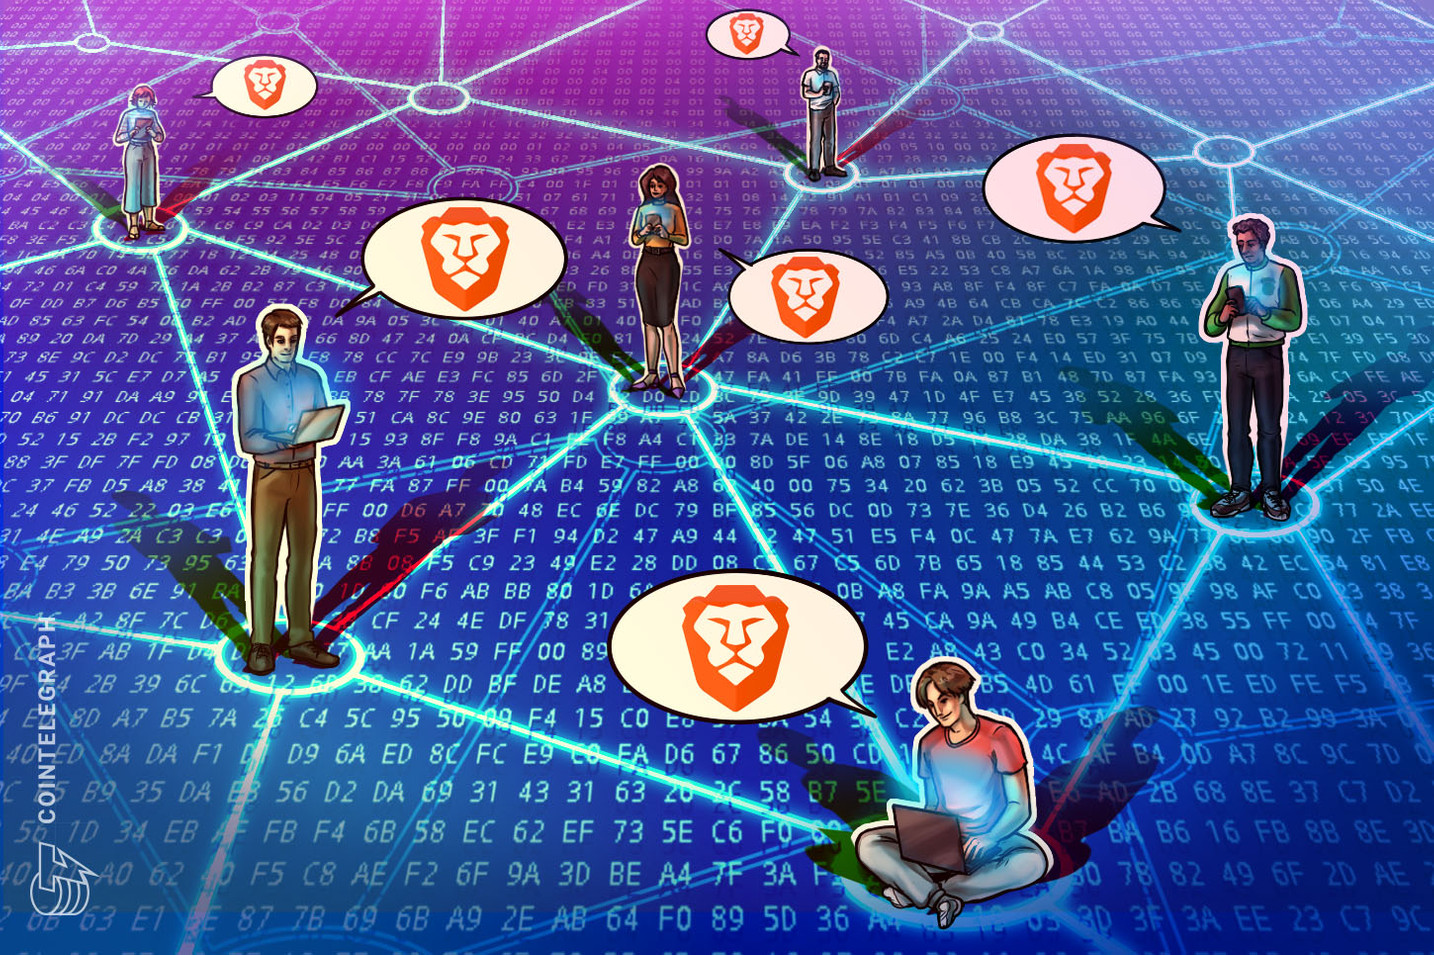 Crypto-Powered Brave Browser Reaches Over 15 Million Monthly Active Users